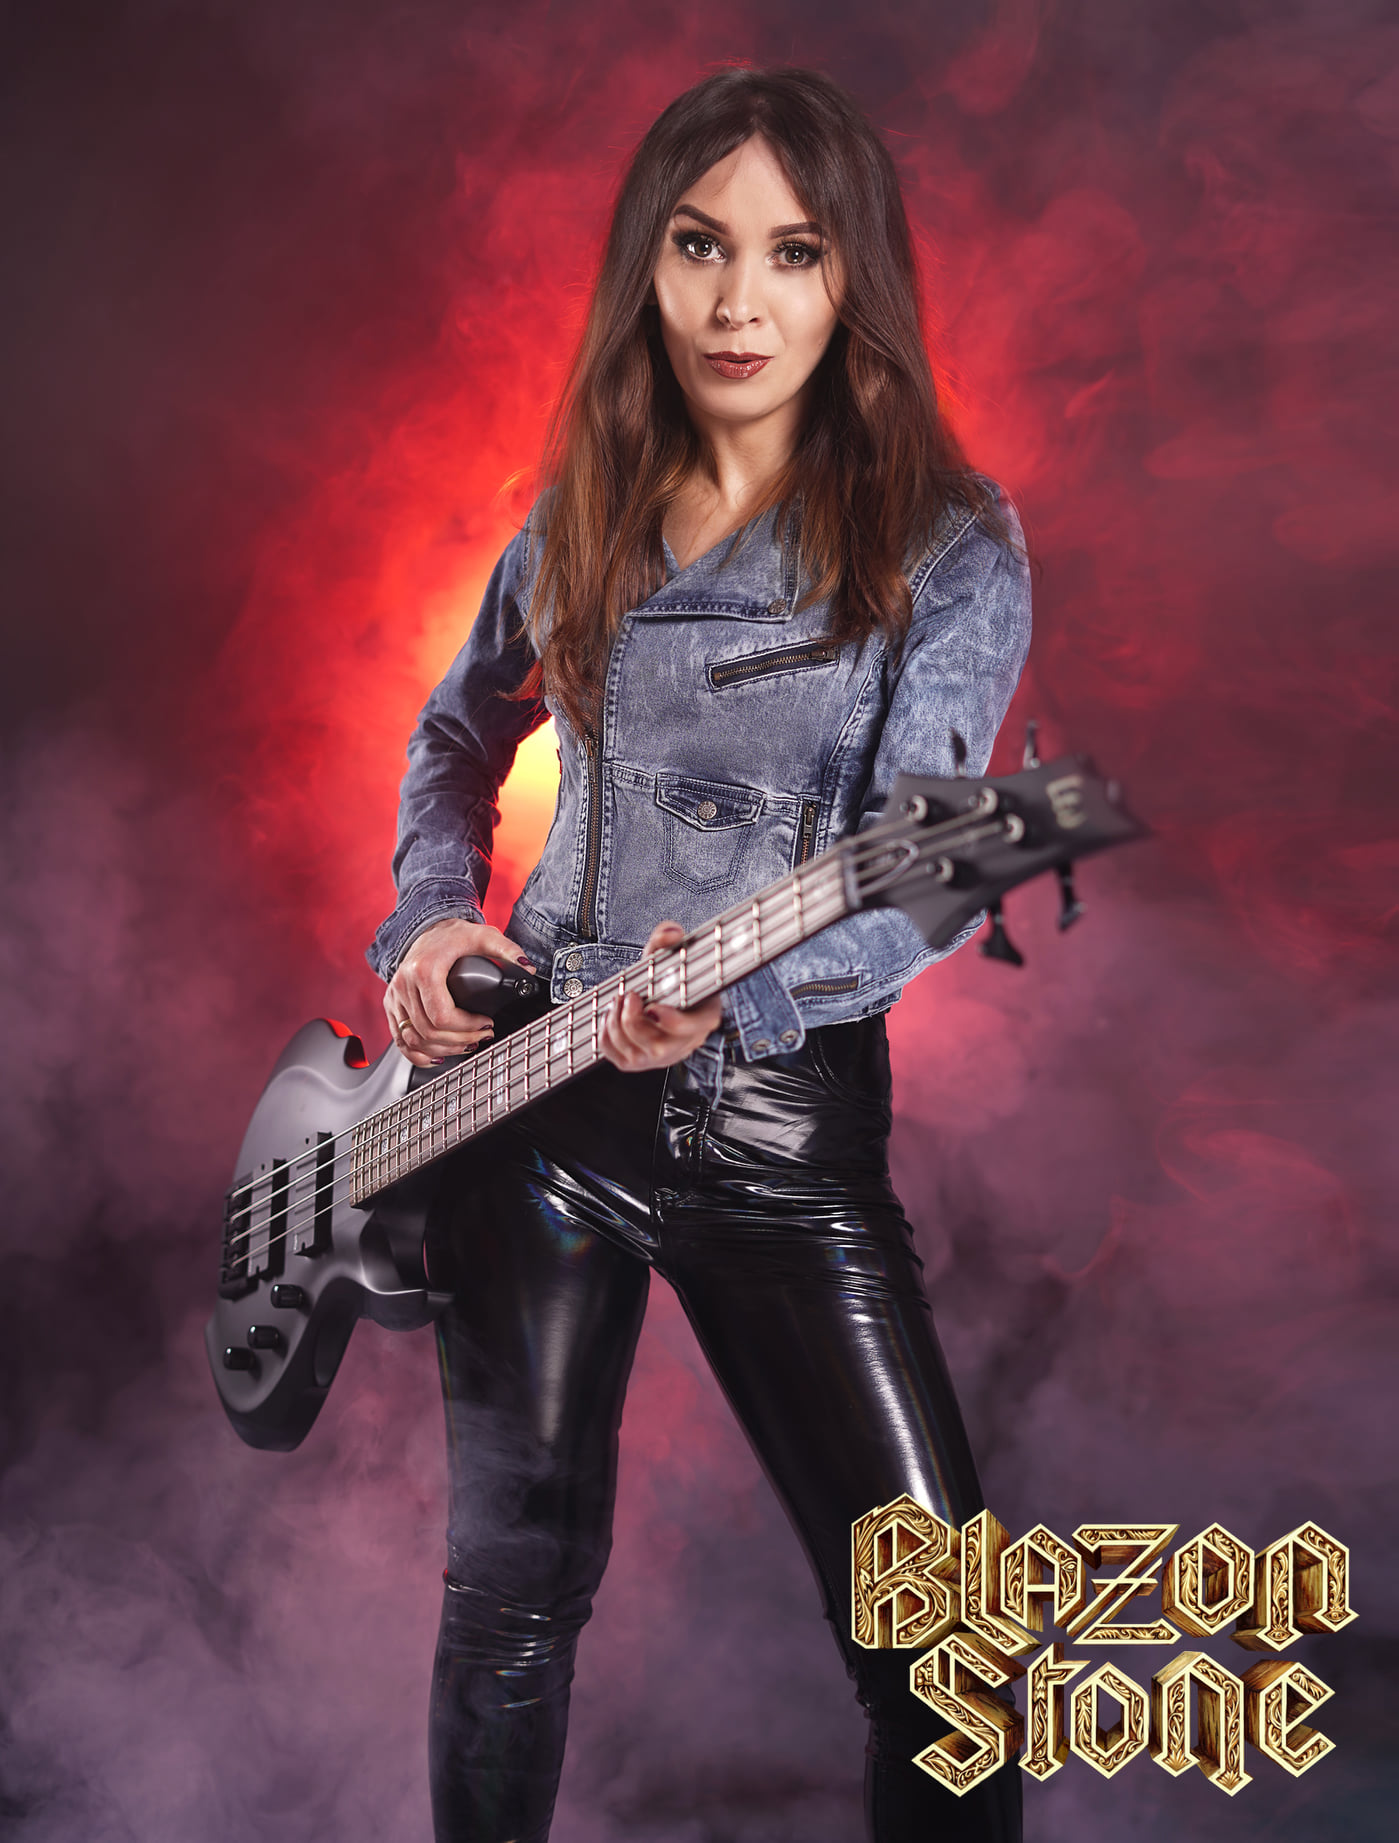 Marta Gabriel as the new bassist at Blazon Stone